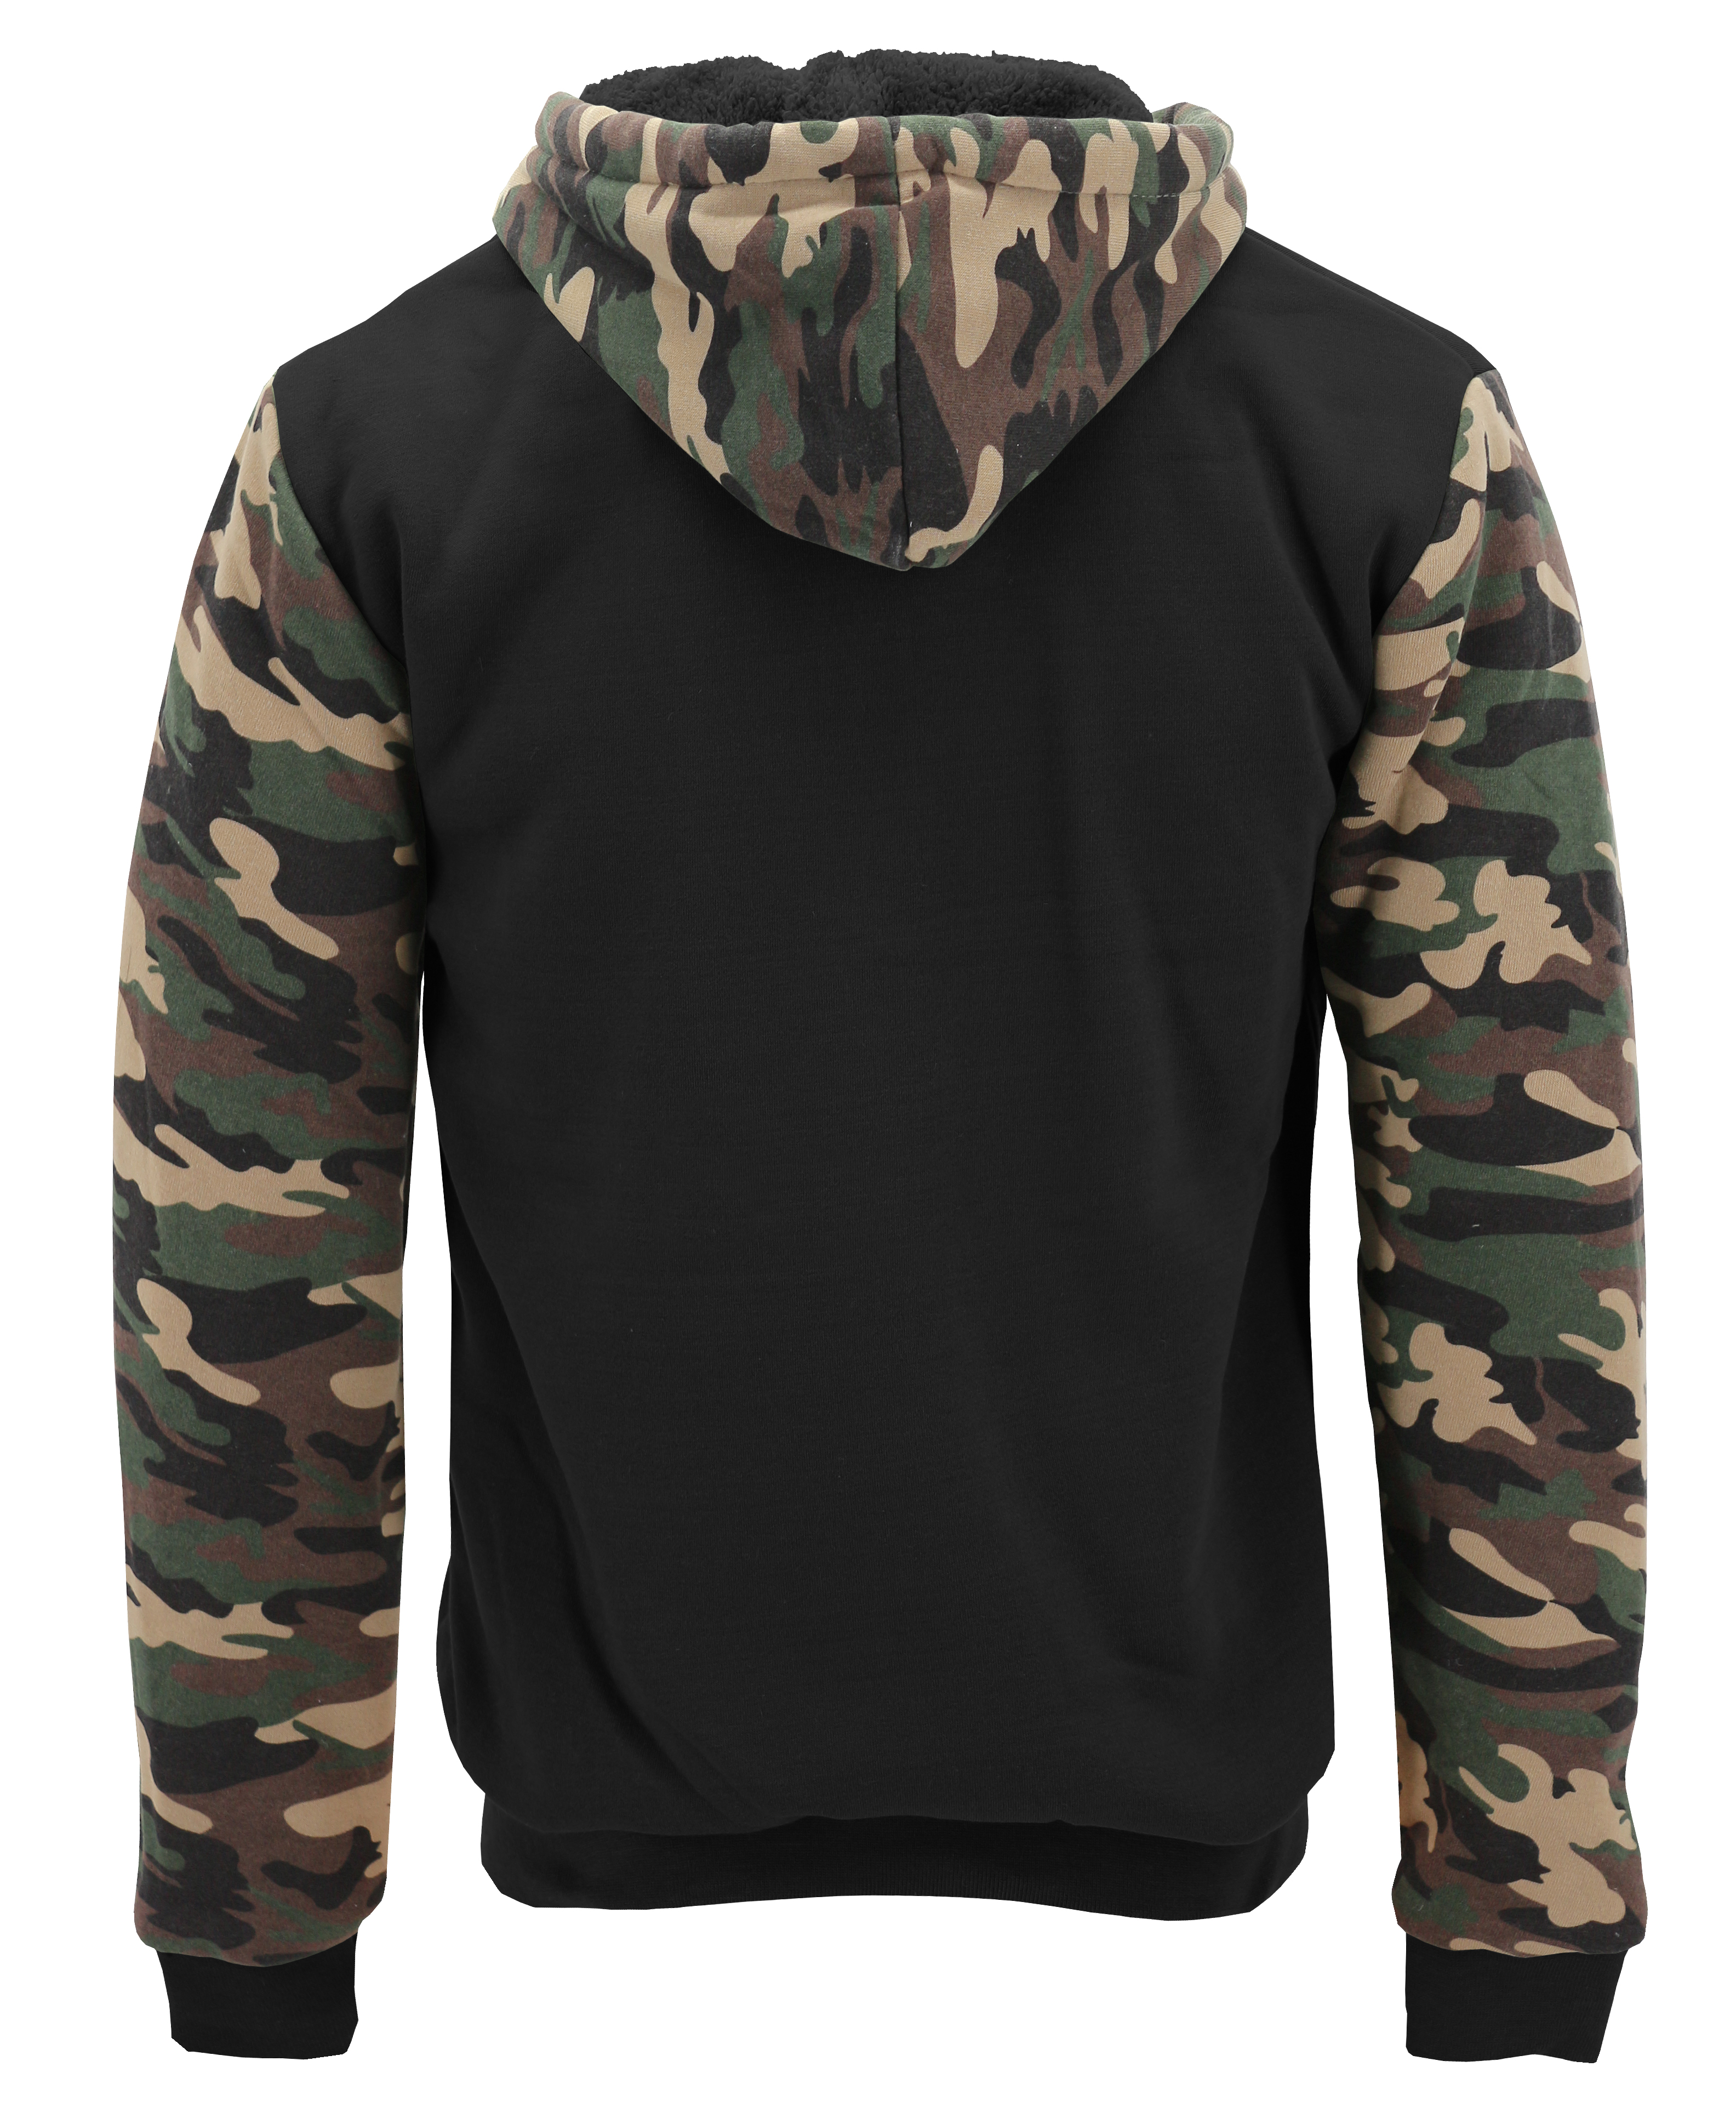 miniature 6 - Men-039-s-Camo-Sherpa-Hoodie-Zip-Up-Athletic-Army-Fleece-Hunting-Sweater-Jacket